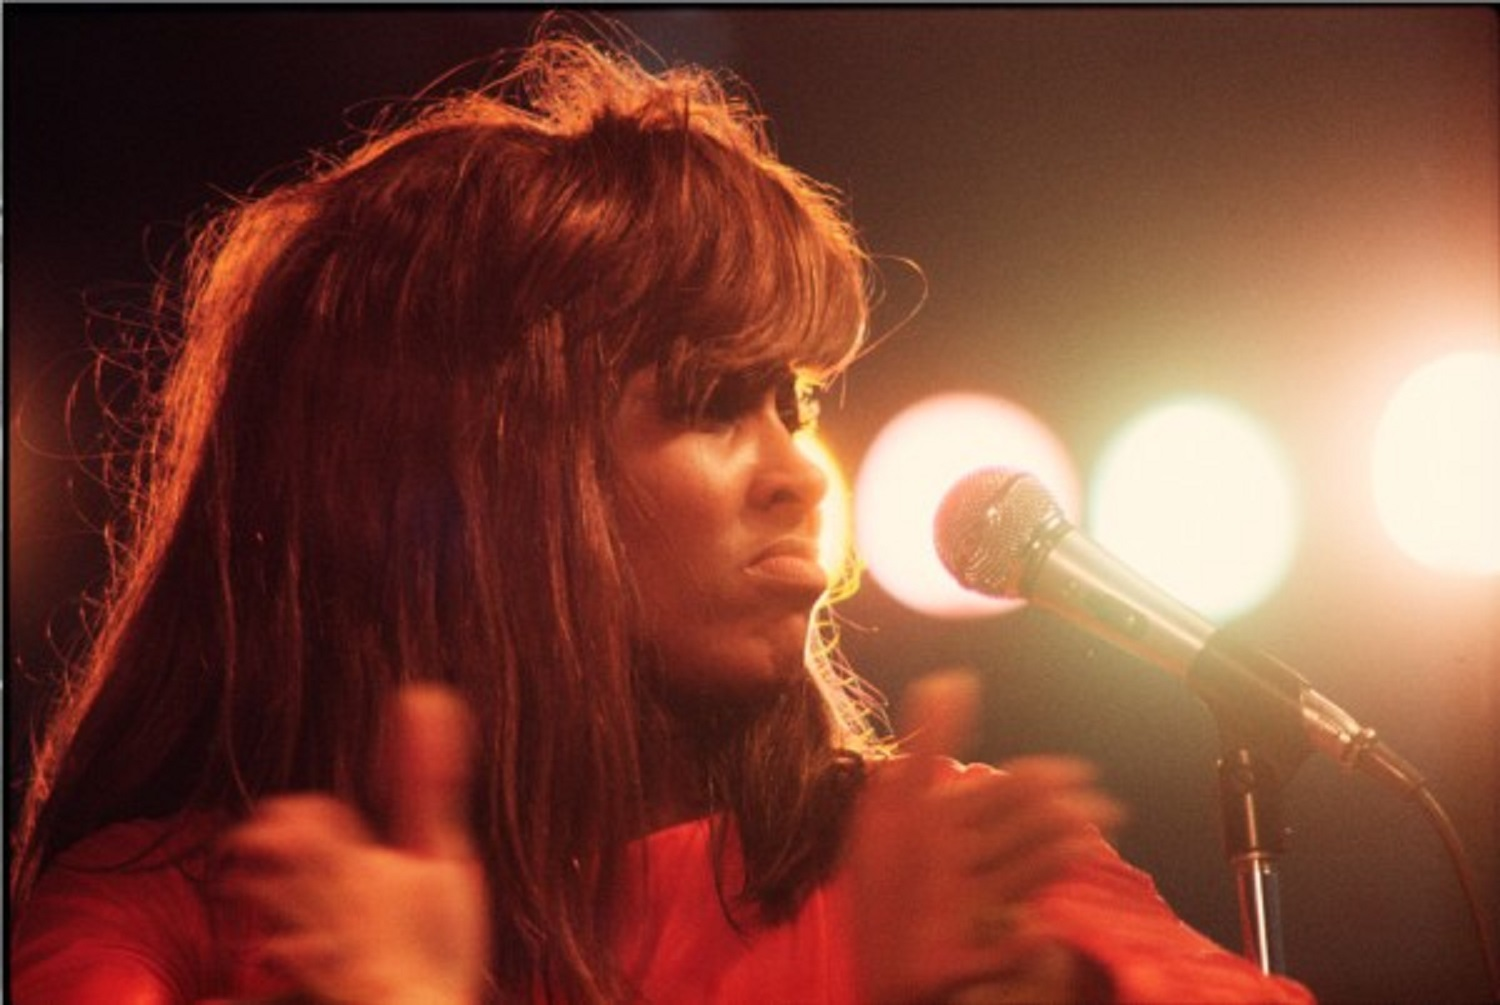 Tina Turner/Central Park 1970, by Walter Iooss.